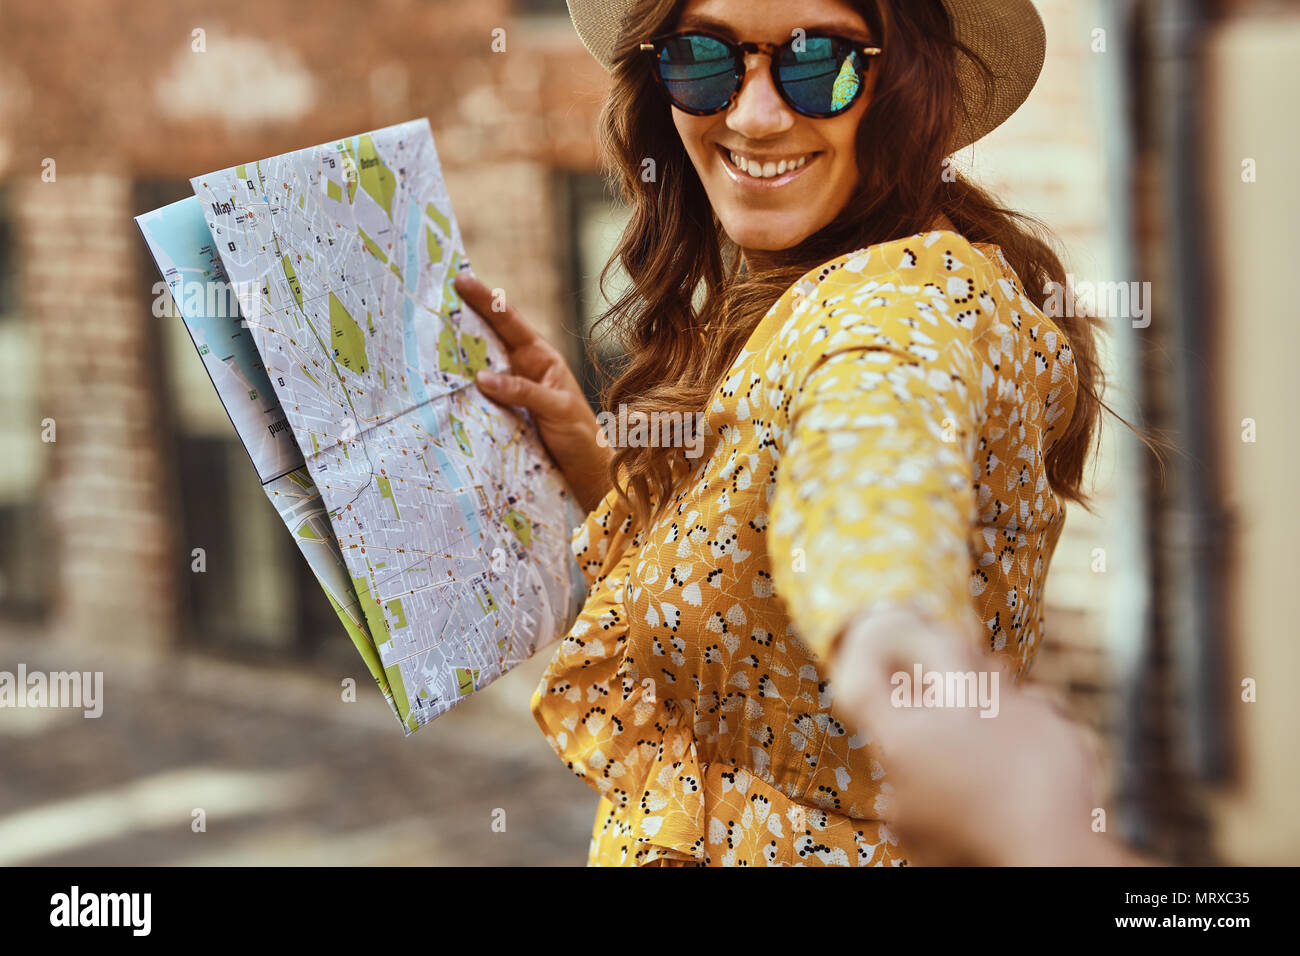 POV of a smiling young woman wearing sunglasses and holding a map leading another person by the hand while exploring a city together - Stock Image